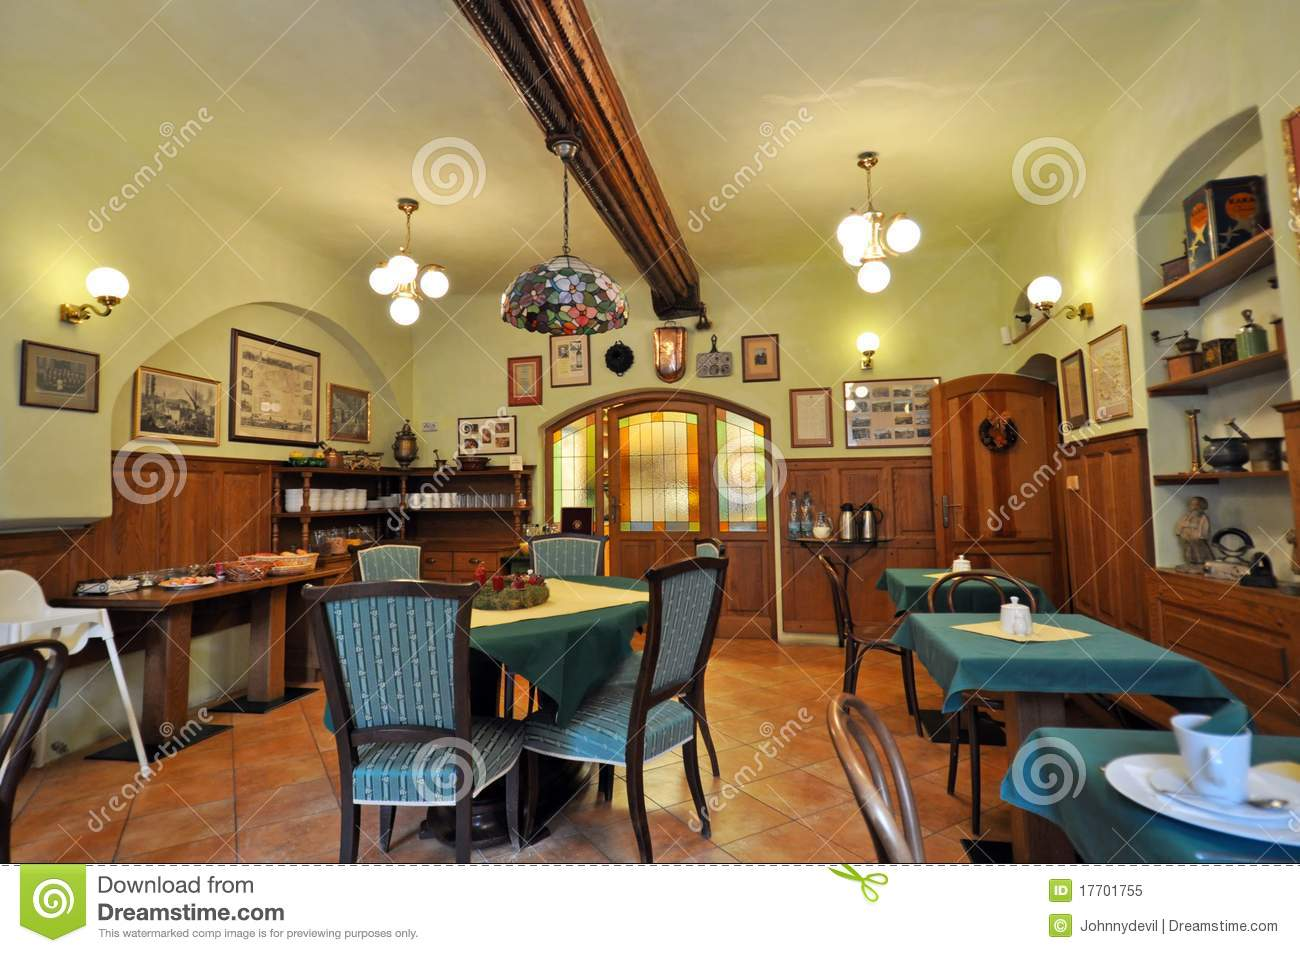 277 555 Restaurant Rustic Photos Free Royalty Free Stock Photos From Dreamstime